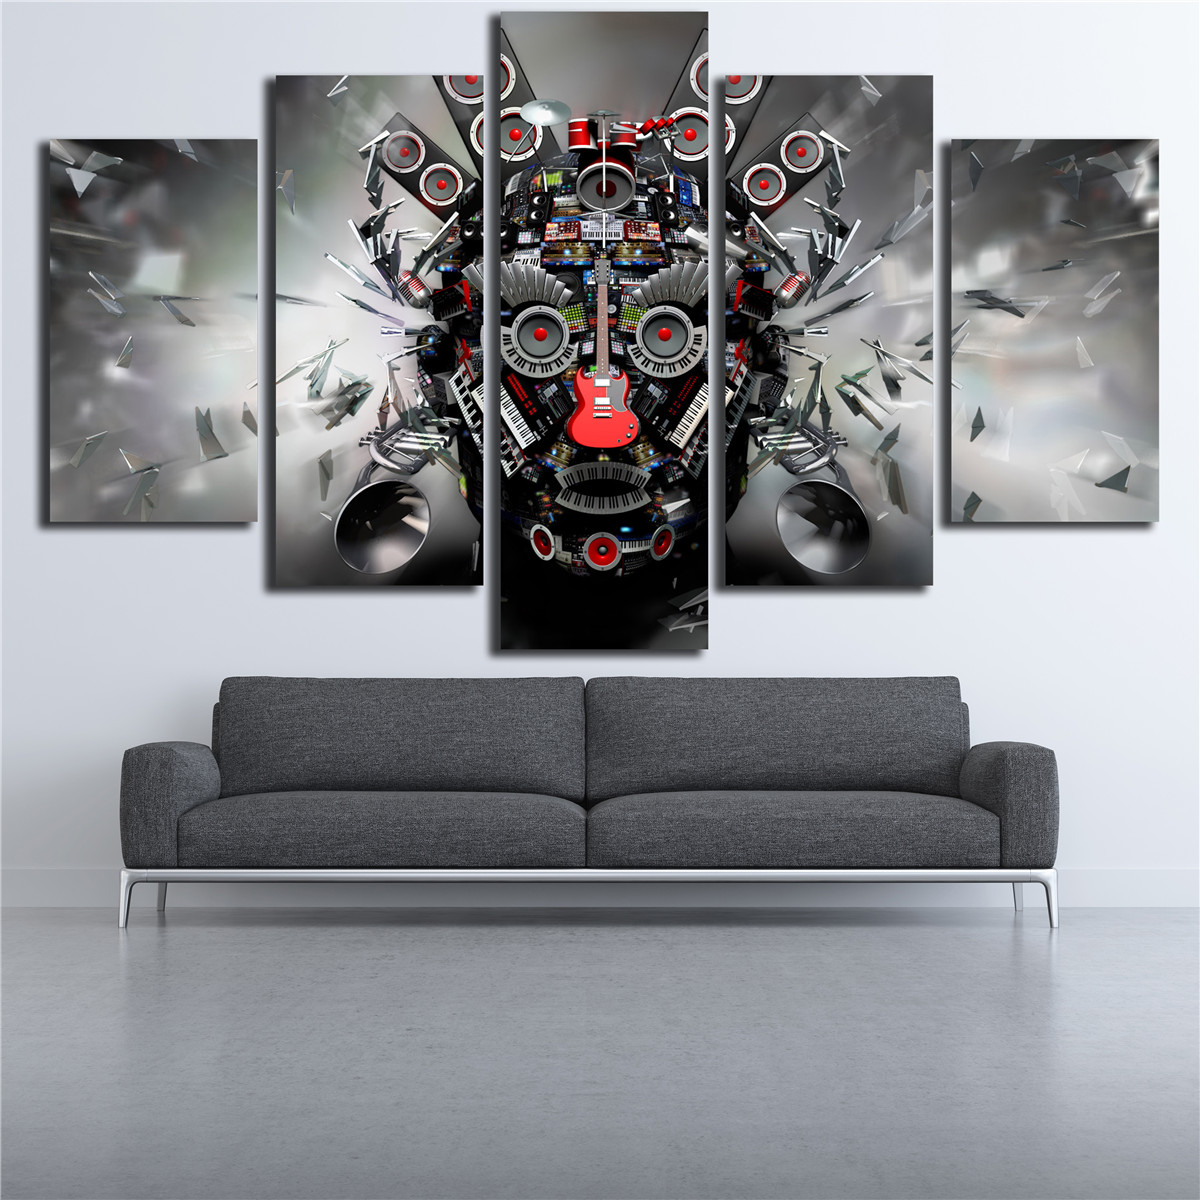 Poster Rock Music instruments DJ Console Guitar Art 5 Panel Wall Painting Home Decor Pop Art Pictures Canvas Painting M625